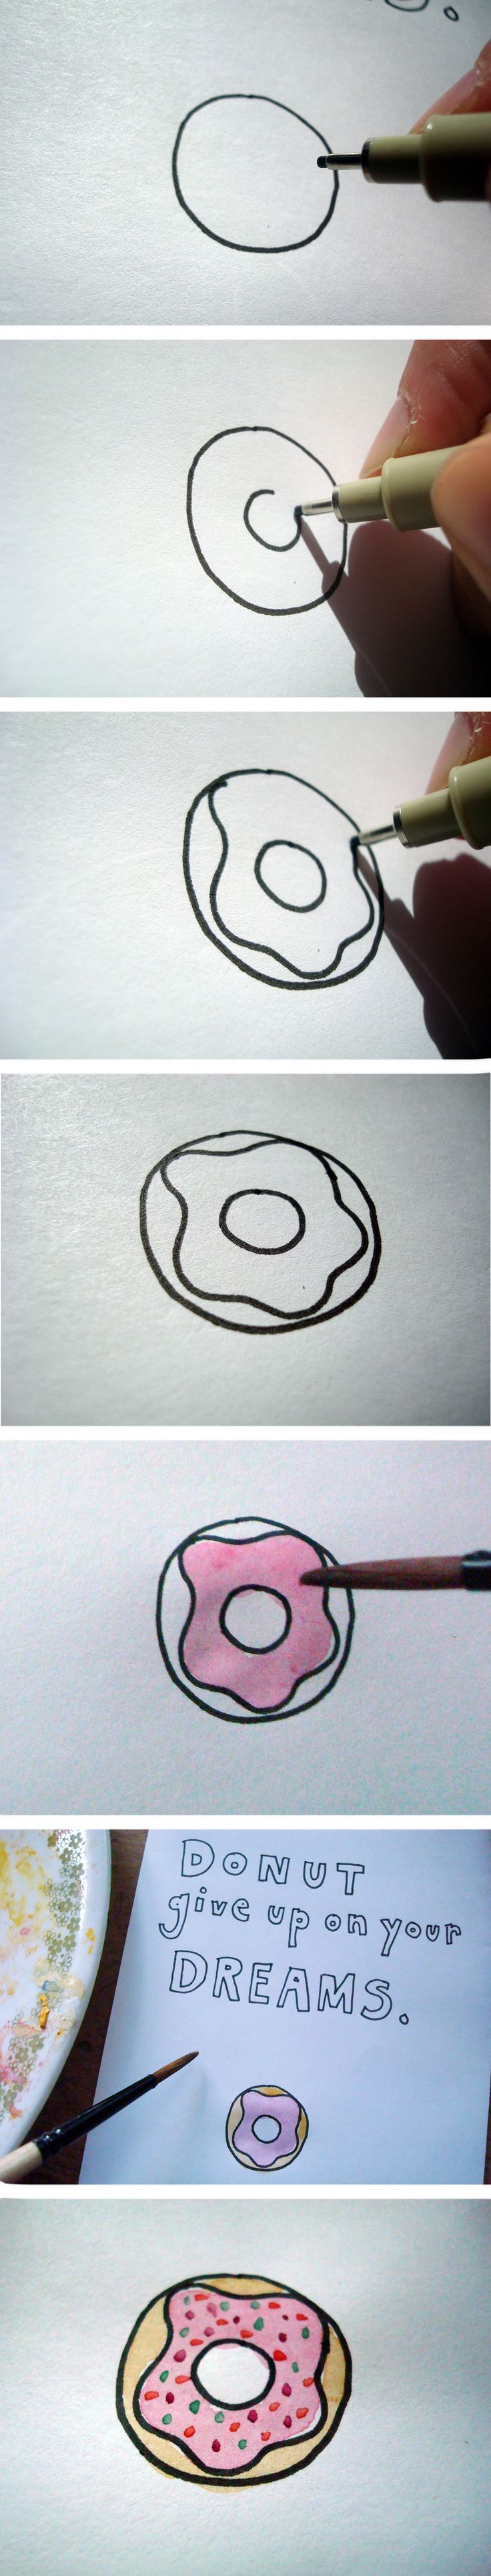 Best 25 cool things to draw ideas on pinterest cool for Fun and easy drawings